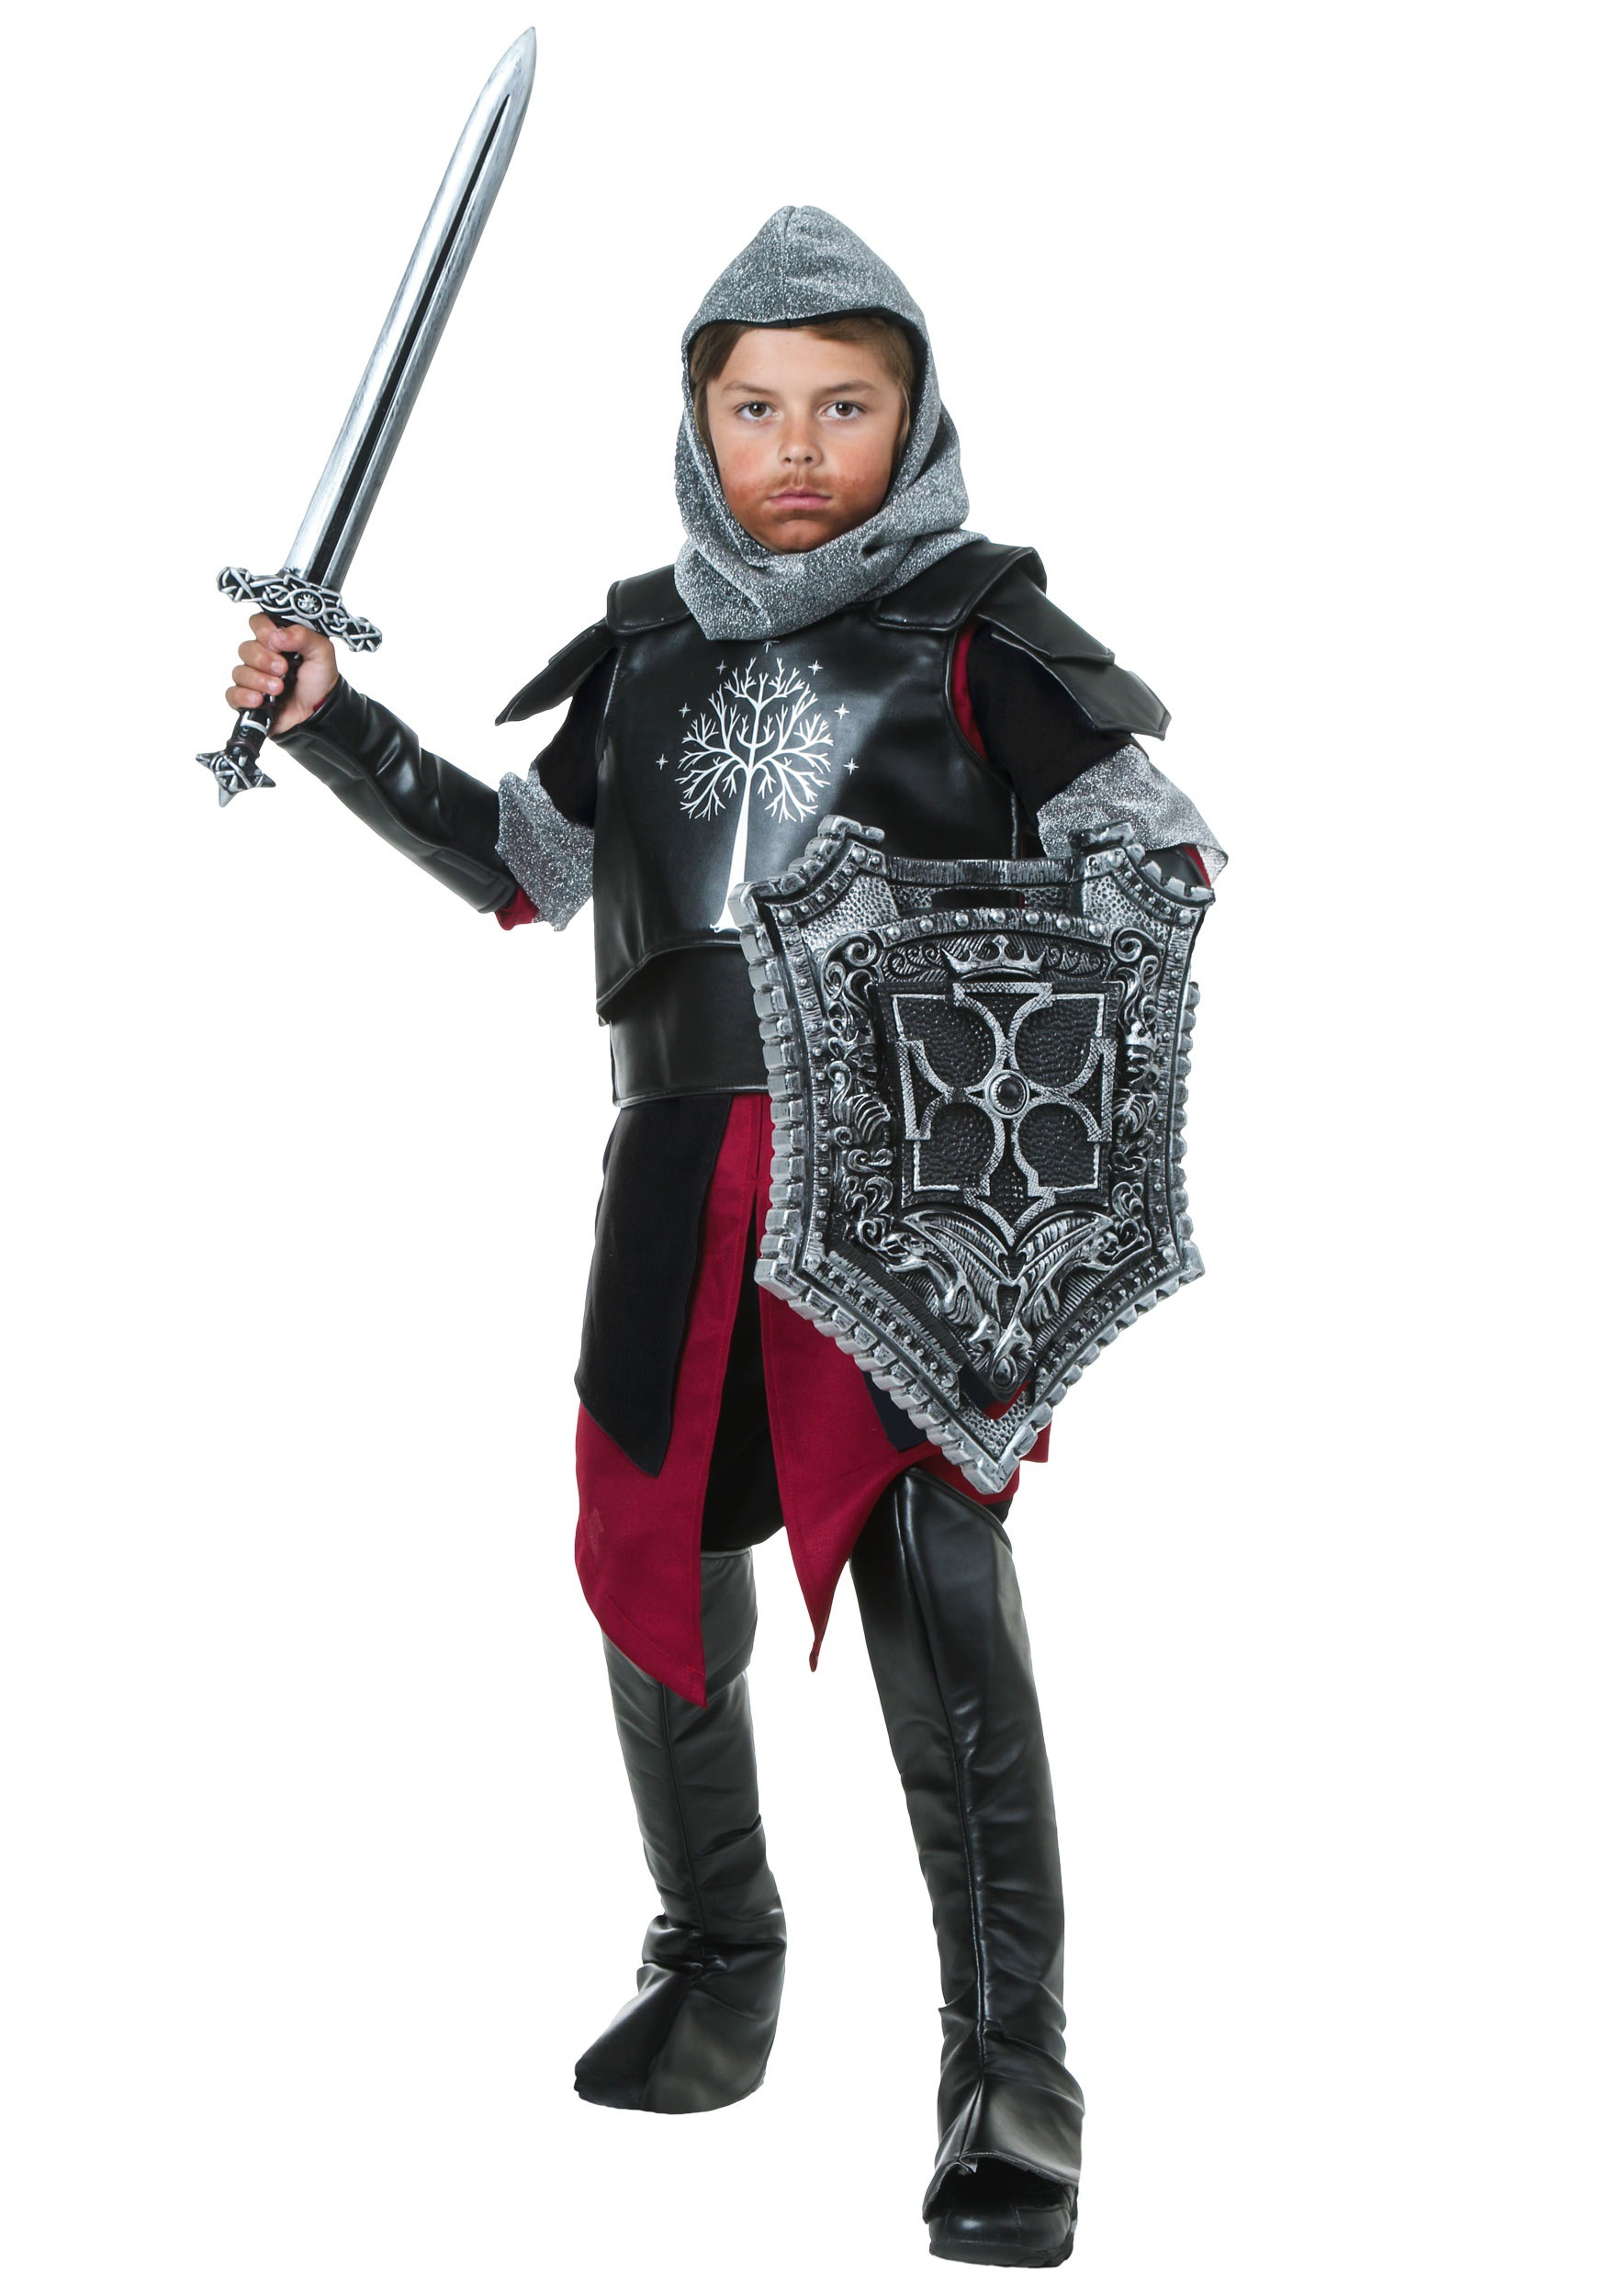 Adult costume halloween knight